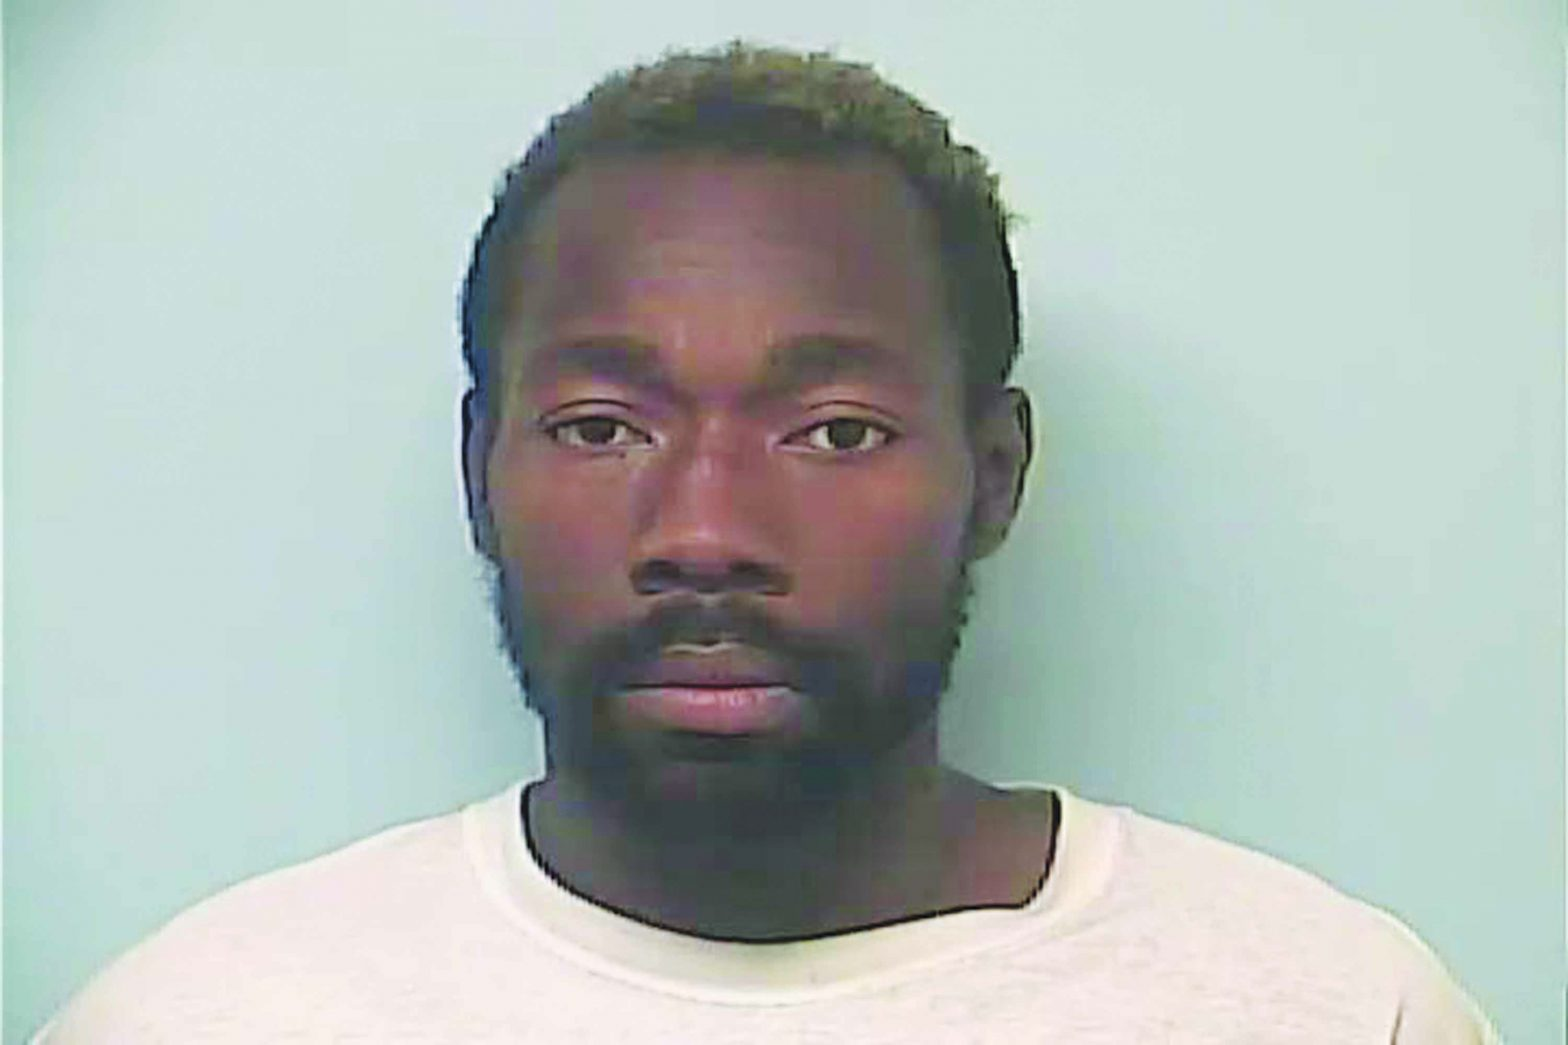 Maintenance Technician Attacked by Inmate